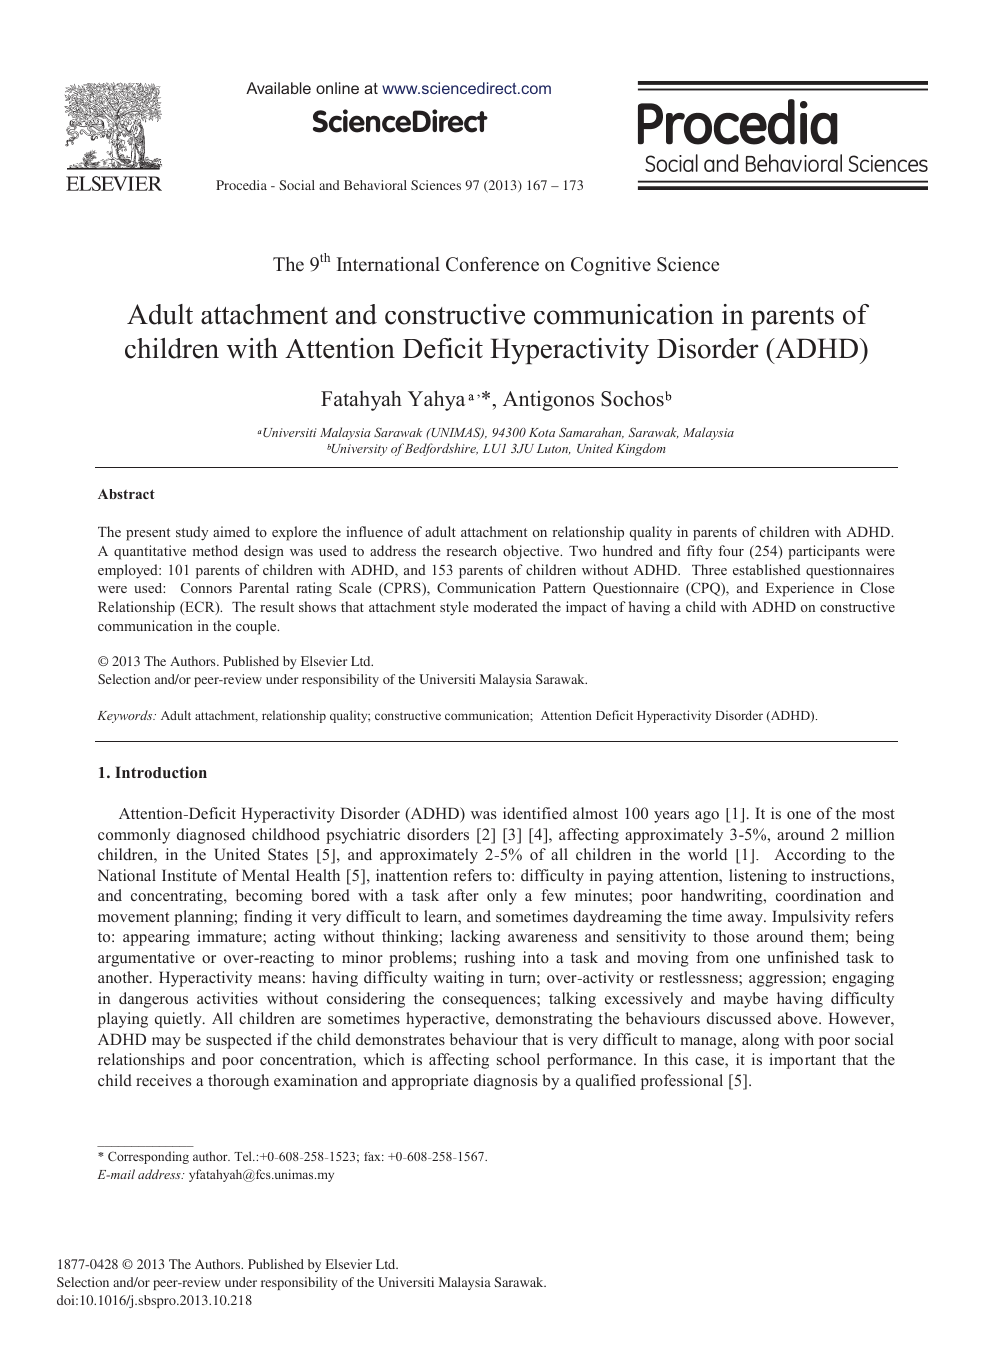 Adult Attachment and Constructive Communication in Parents